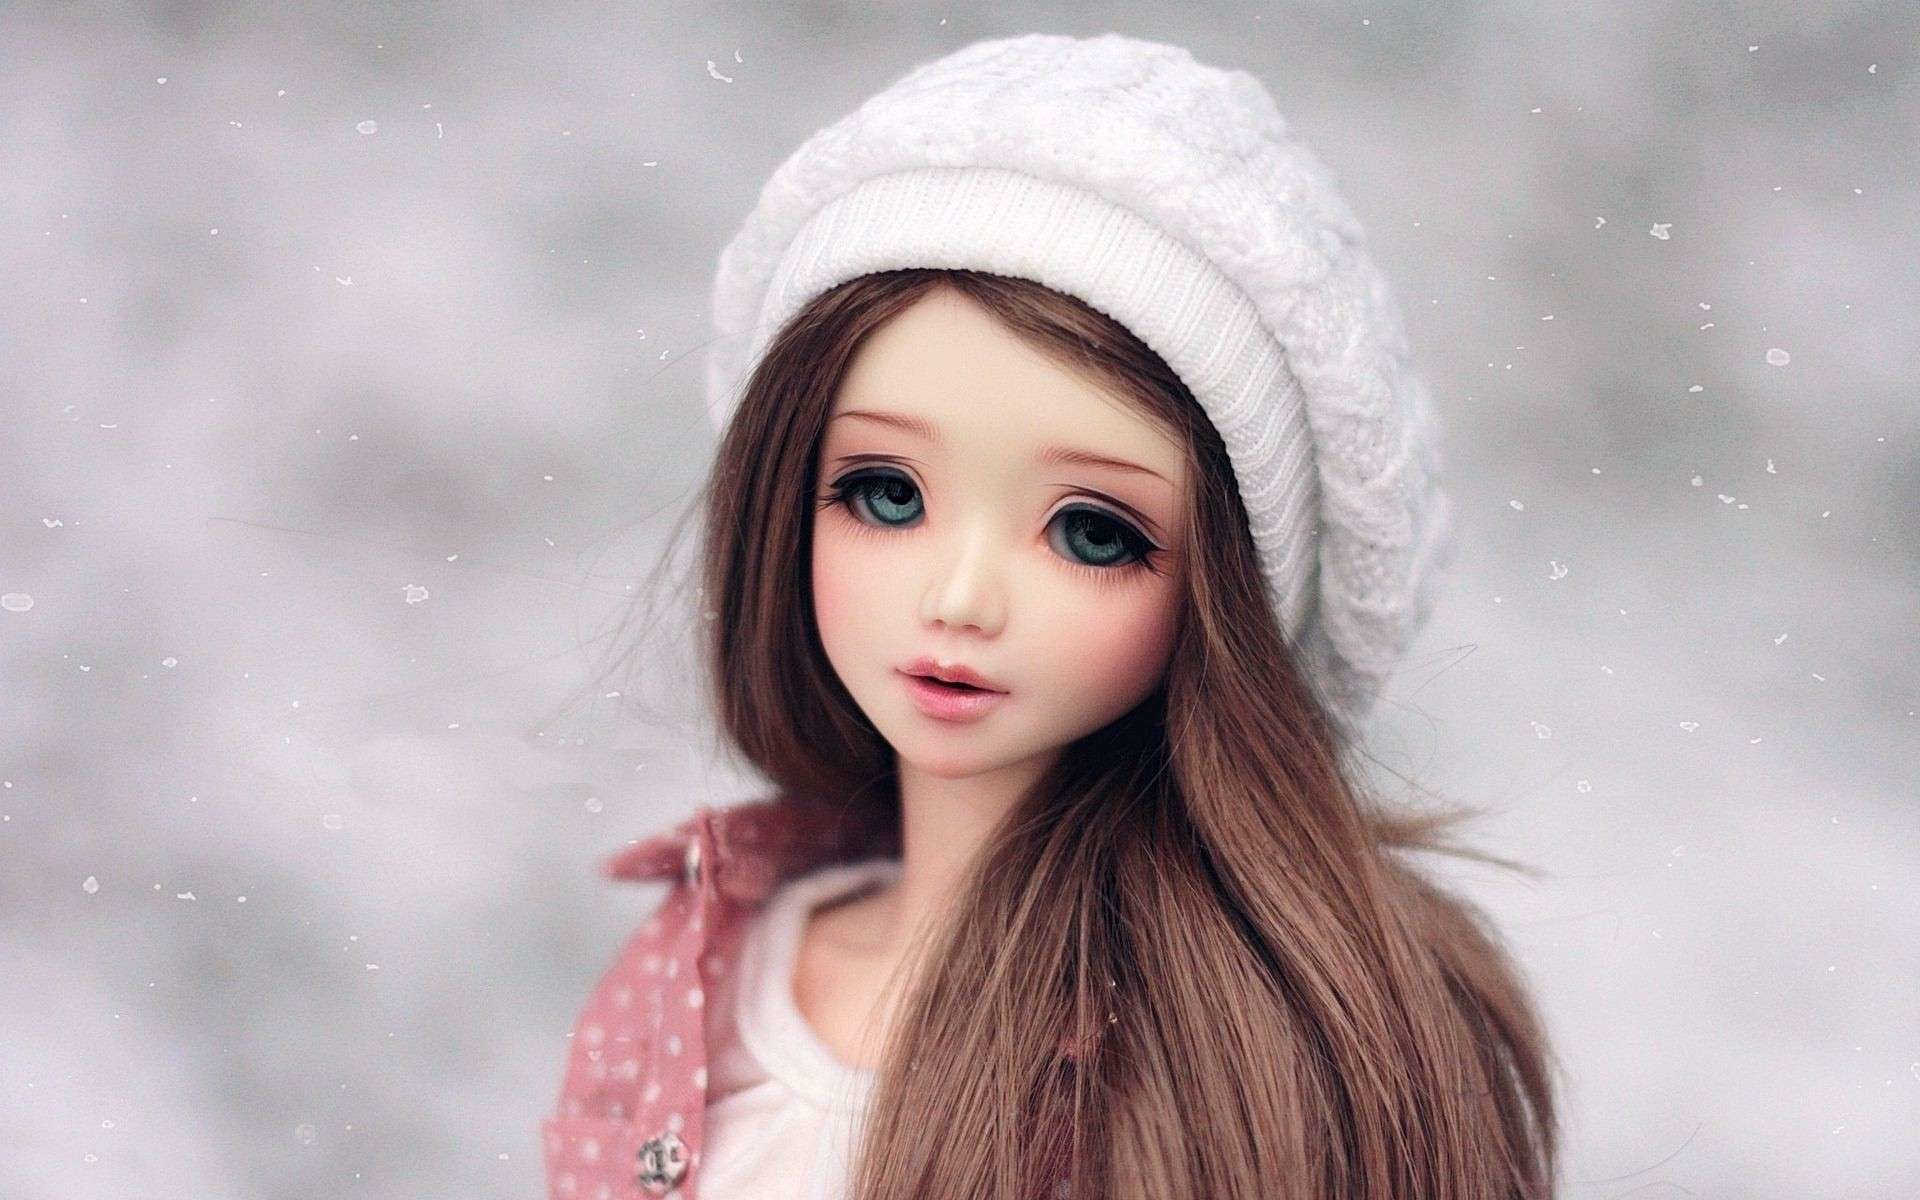 Image detail for Awesome wallpapers Beautiful Dolls Free | HD Wallpapers |  Pinterest | Beautiful dolls, Wallpaper and Hd wallpaper